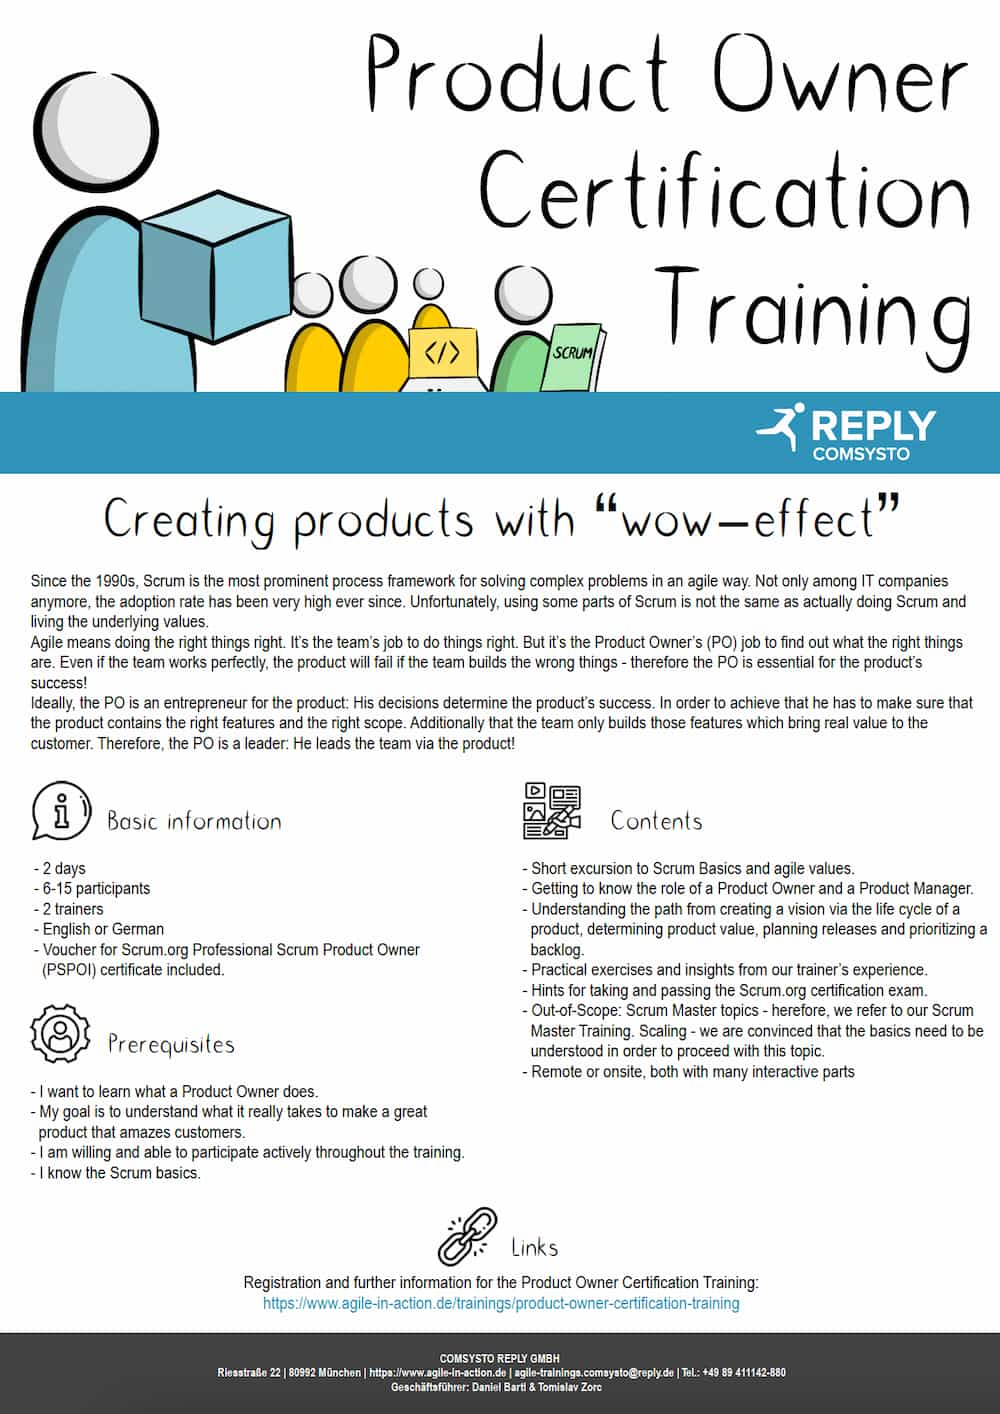 Short overview of the Product Owner Certification training for PSPO1 (Professional Scrum Product Owner 1)